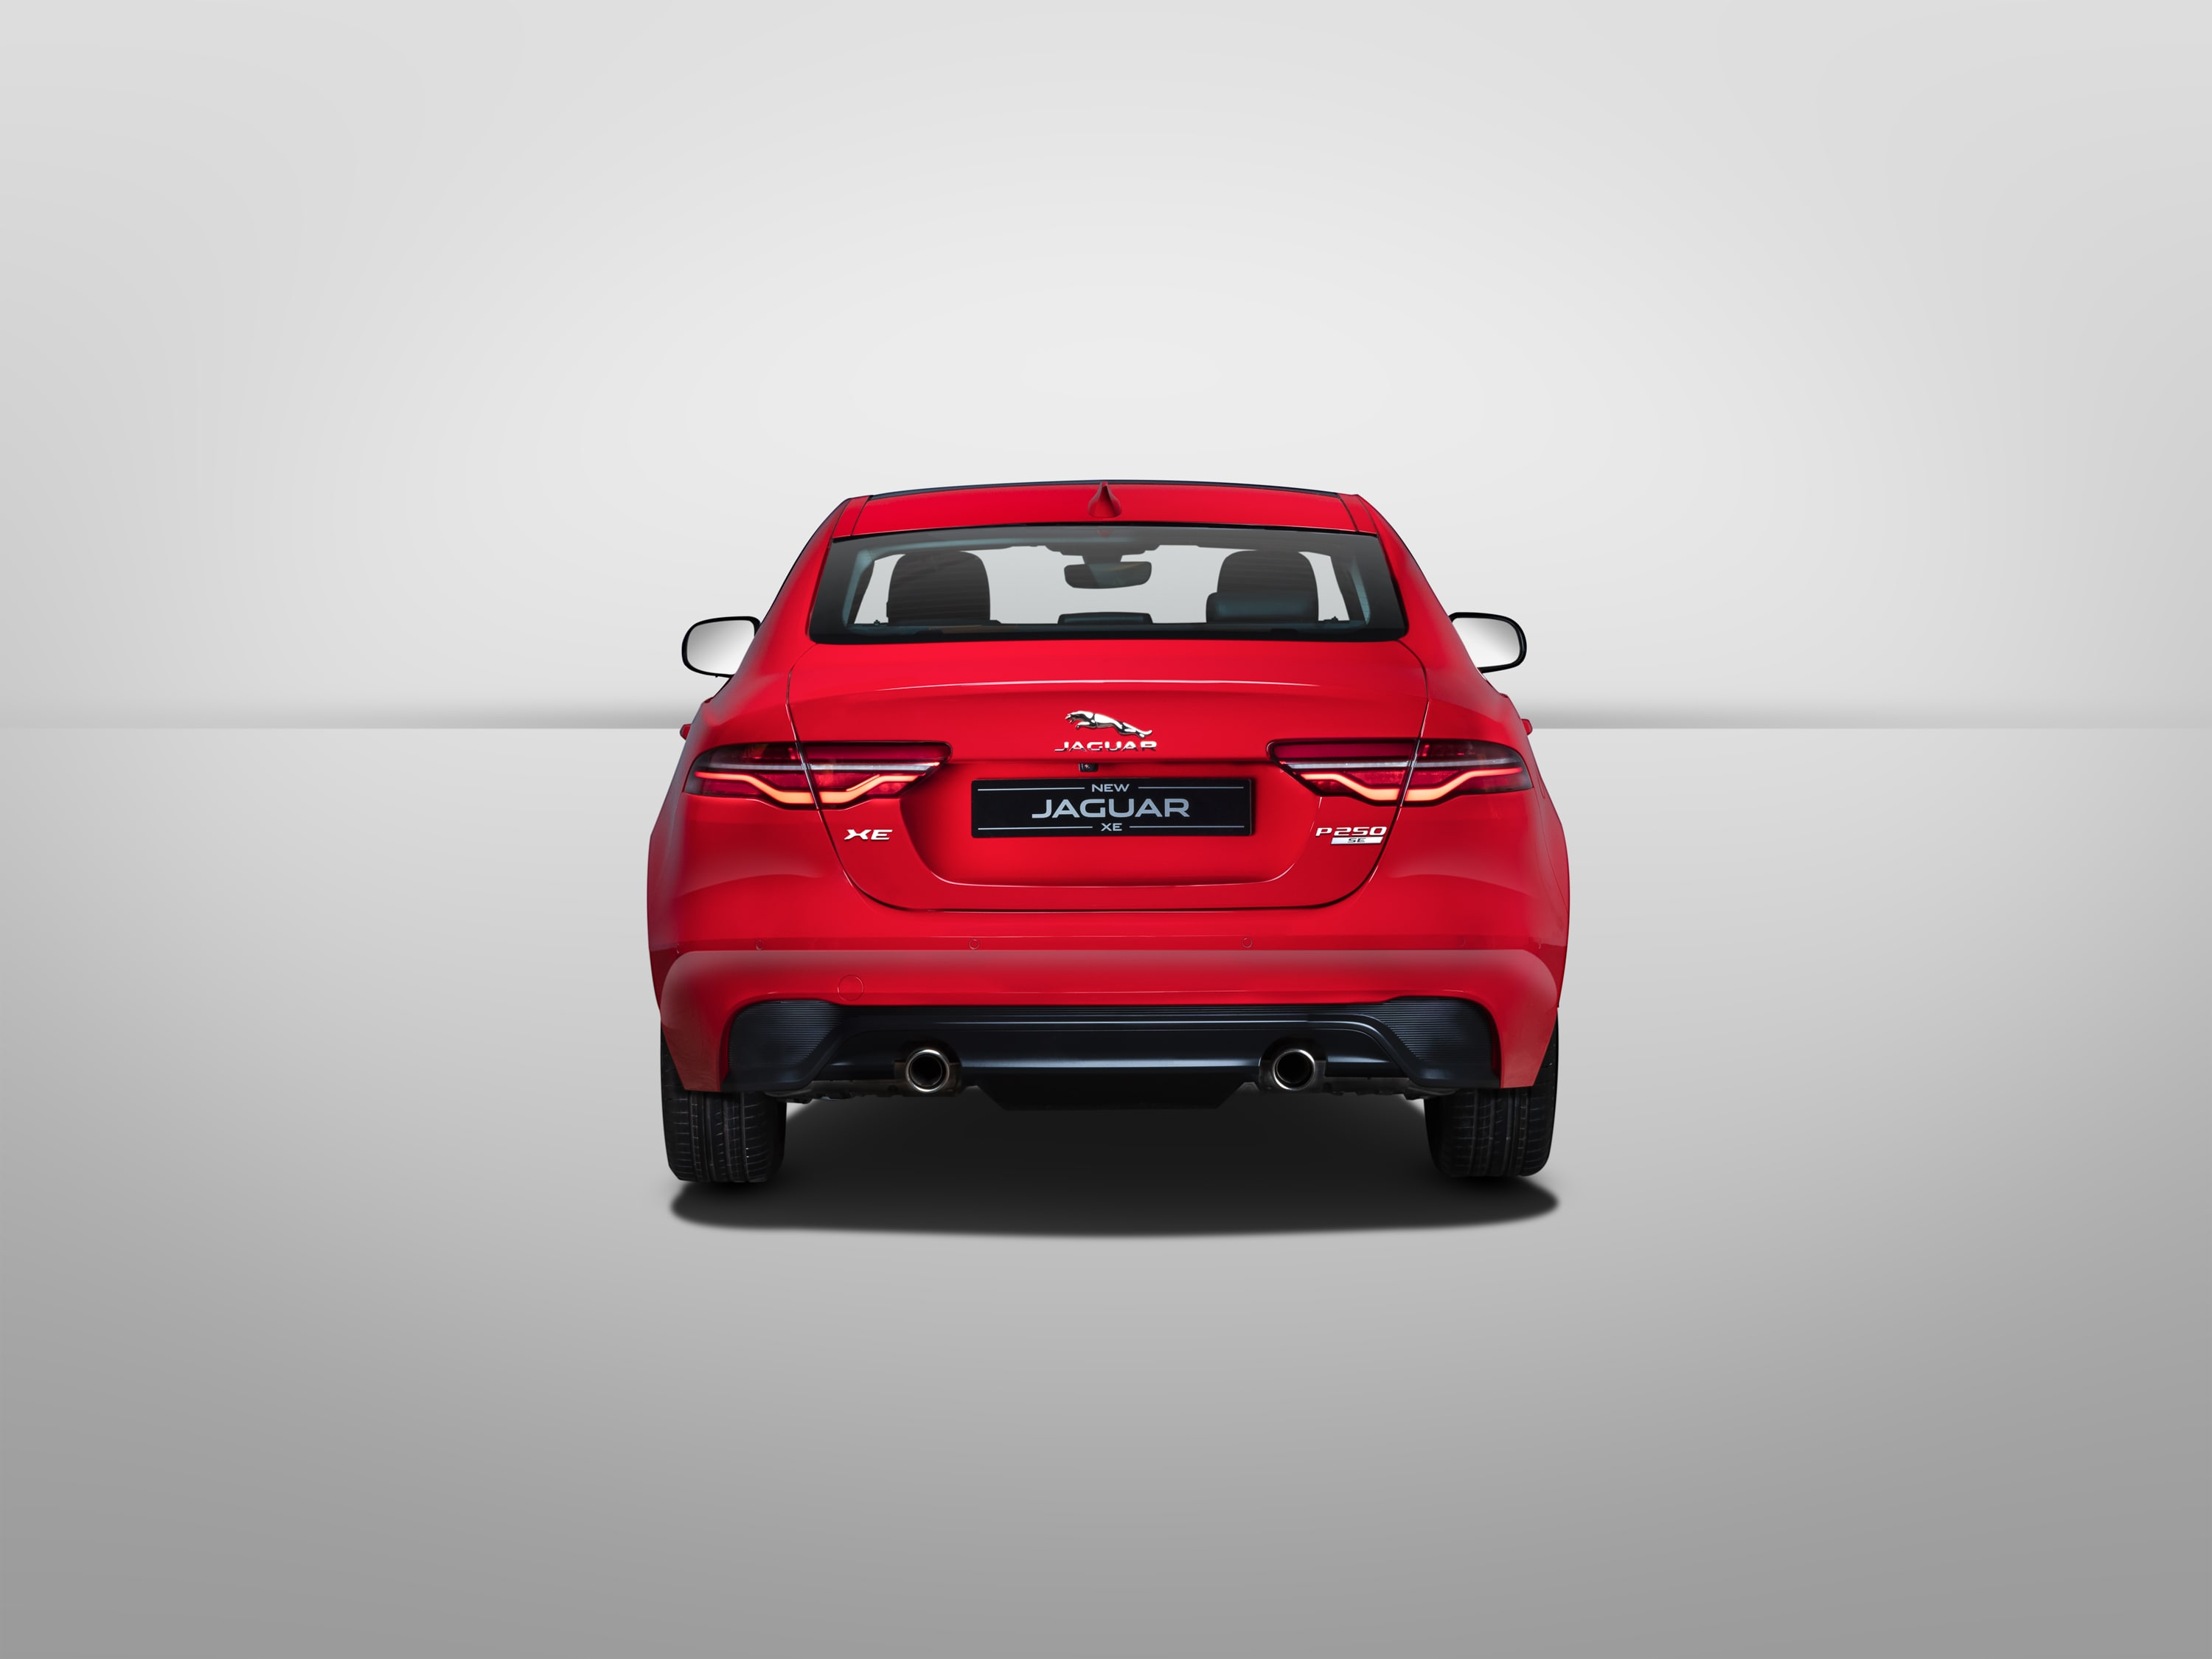 The new XE is offered in four options - Petrol S, Petrol SE, Diesel S and Diesel SE.